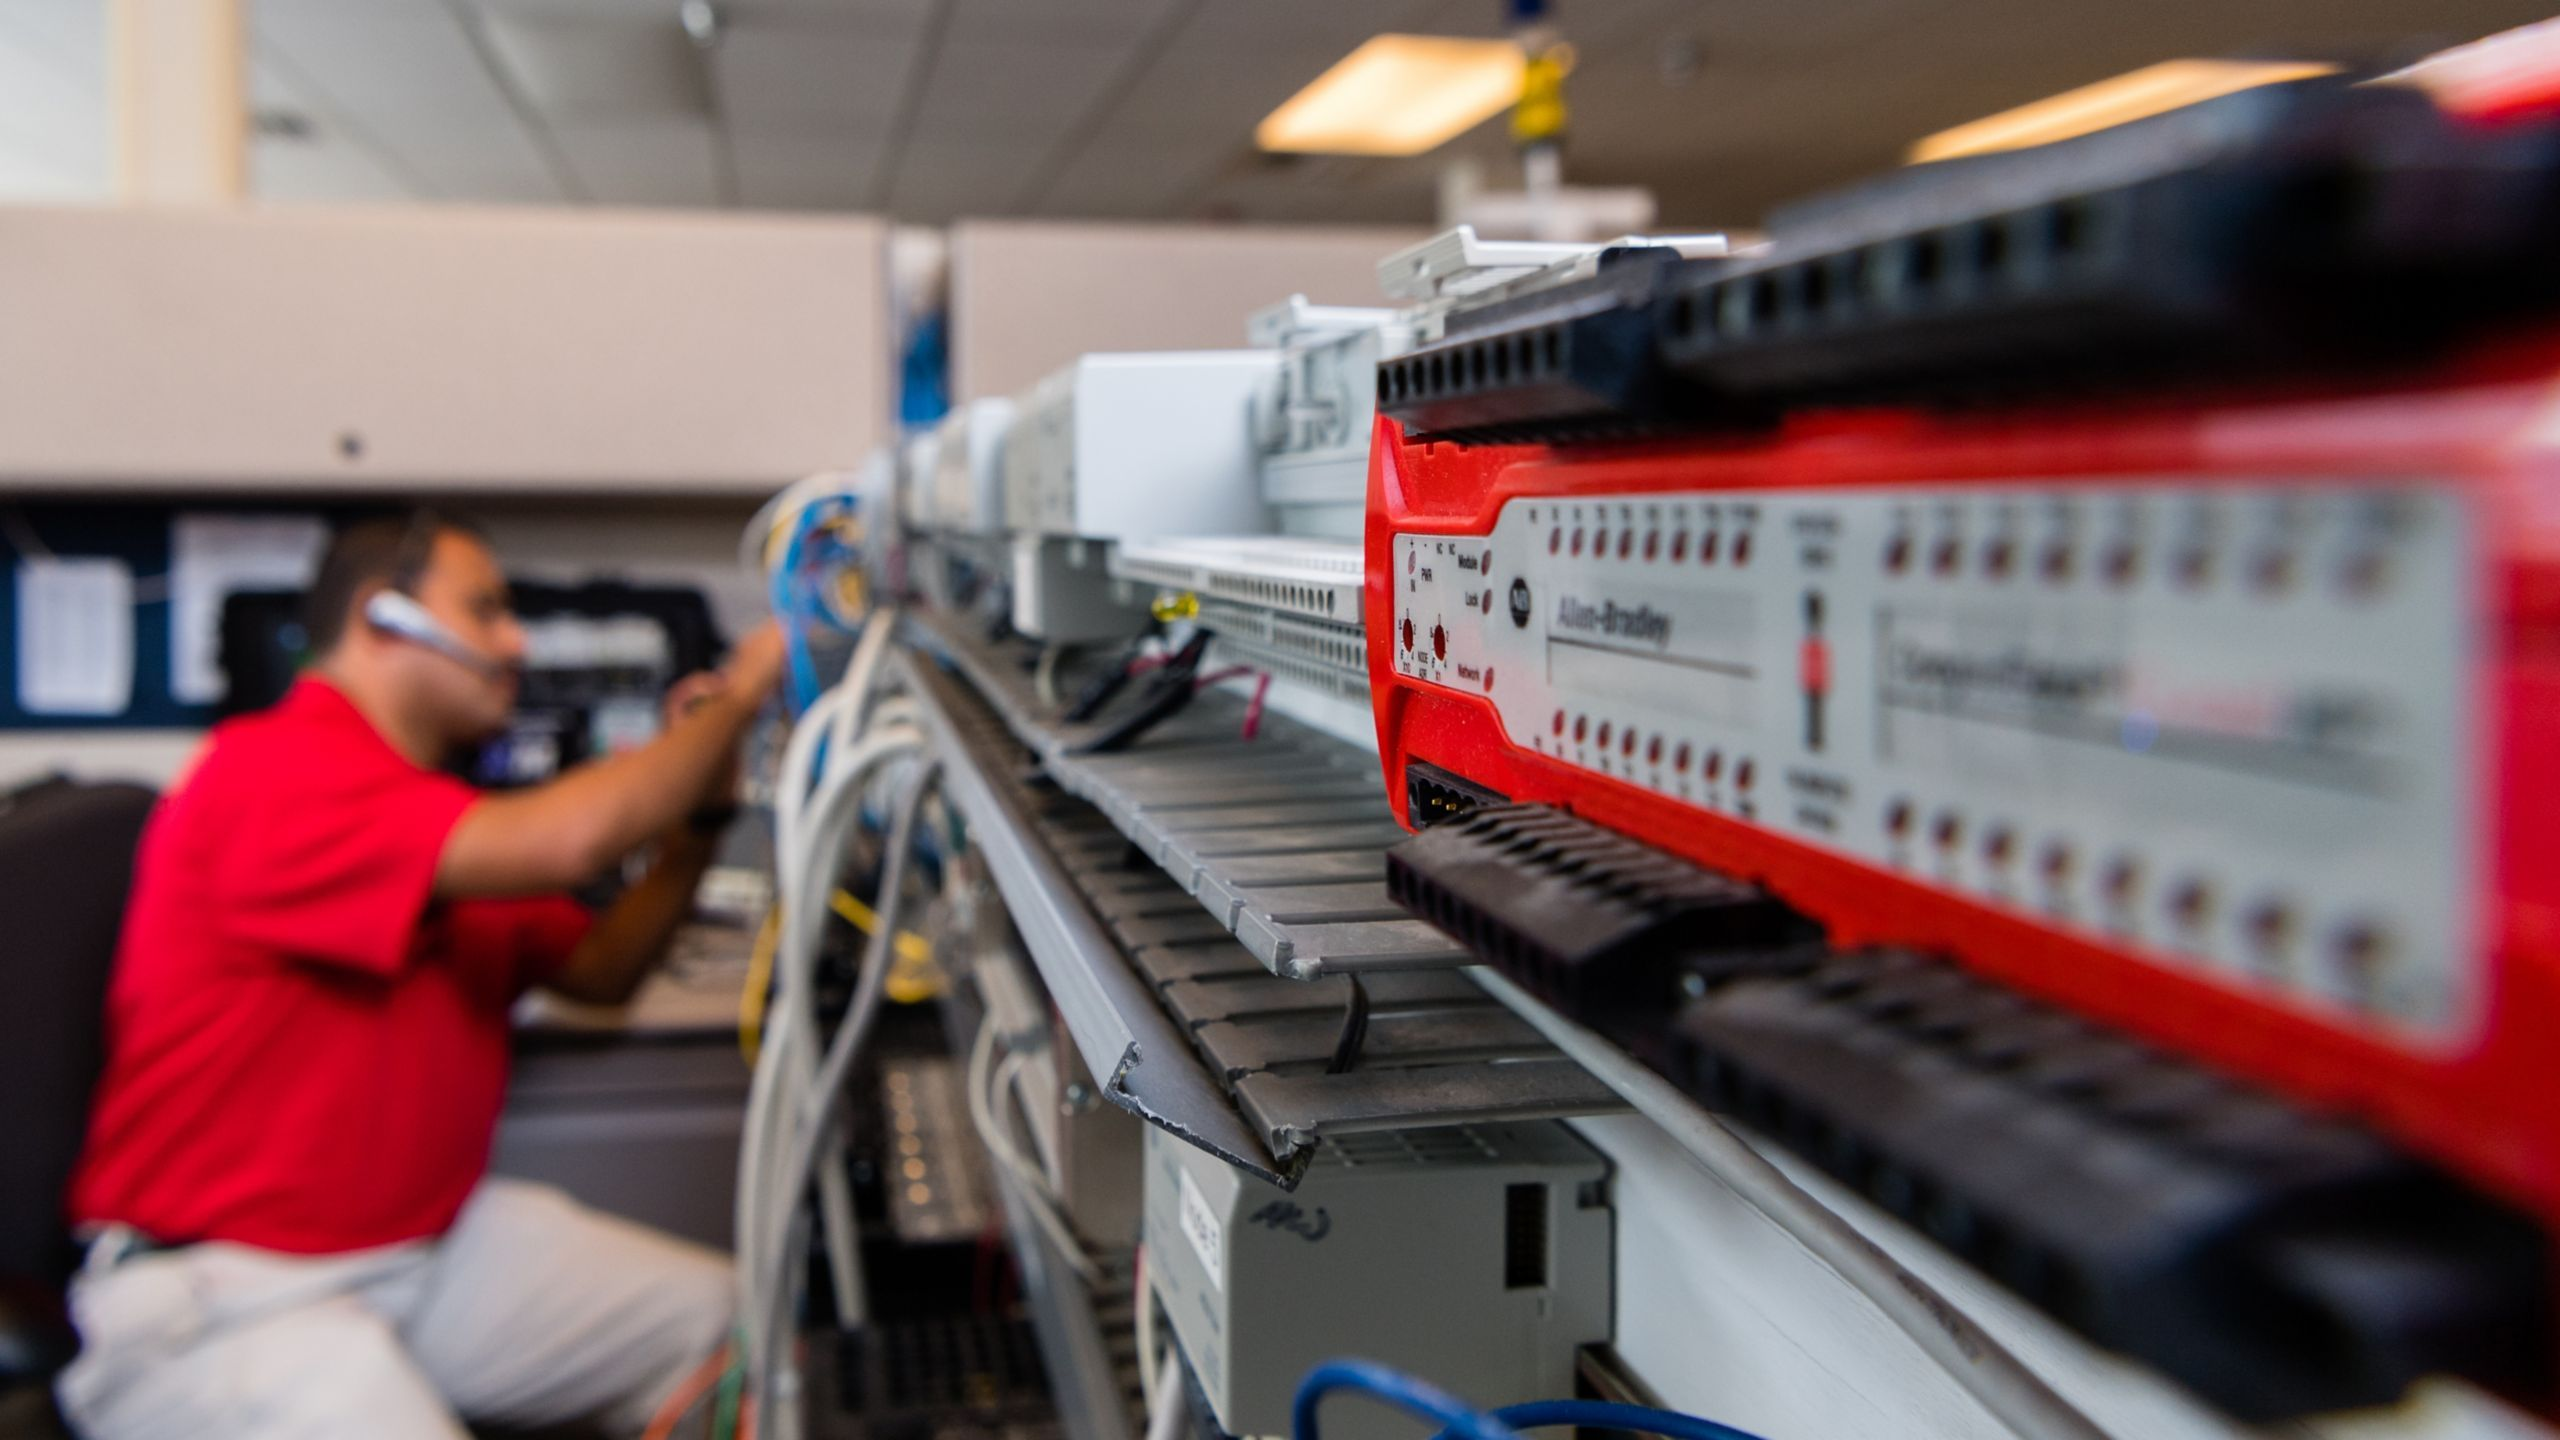 Tech_Connect_Rockwell_Automation